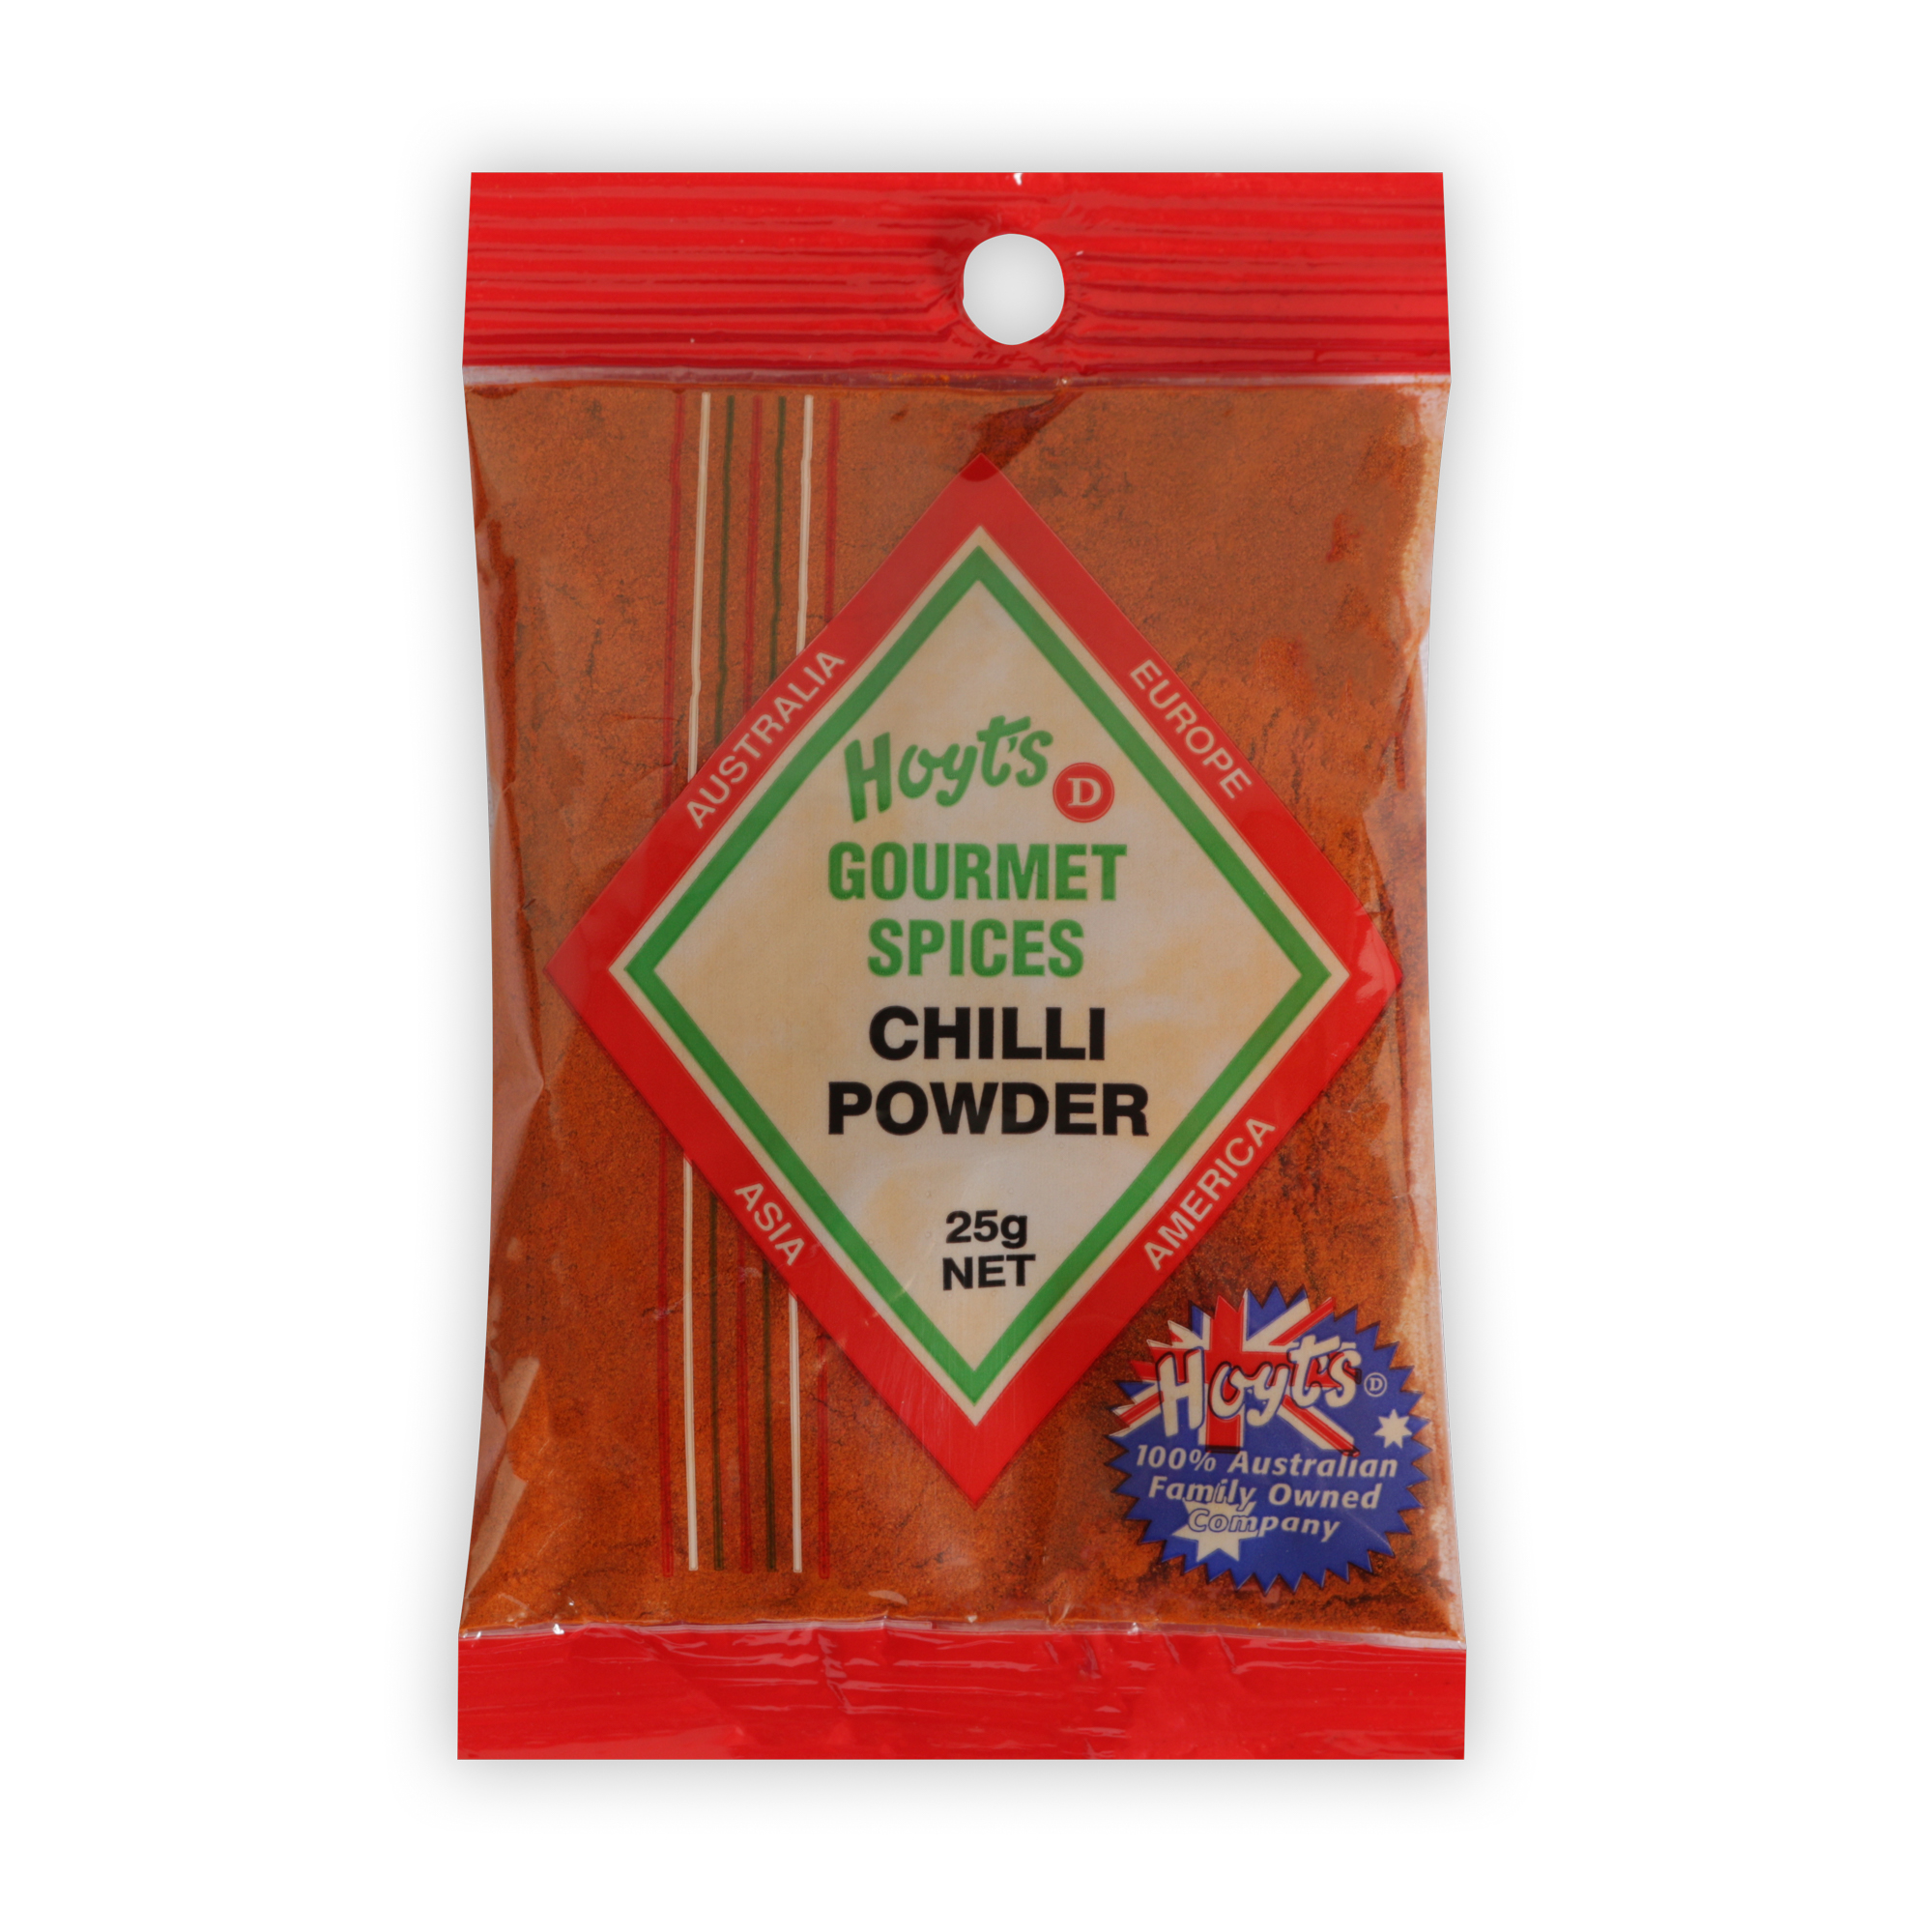 Gourmet Chilli Powder 25g - 9300725010096 1